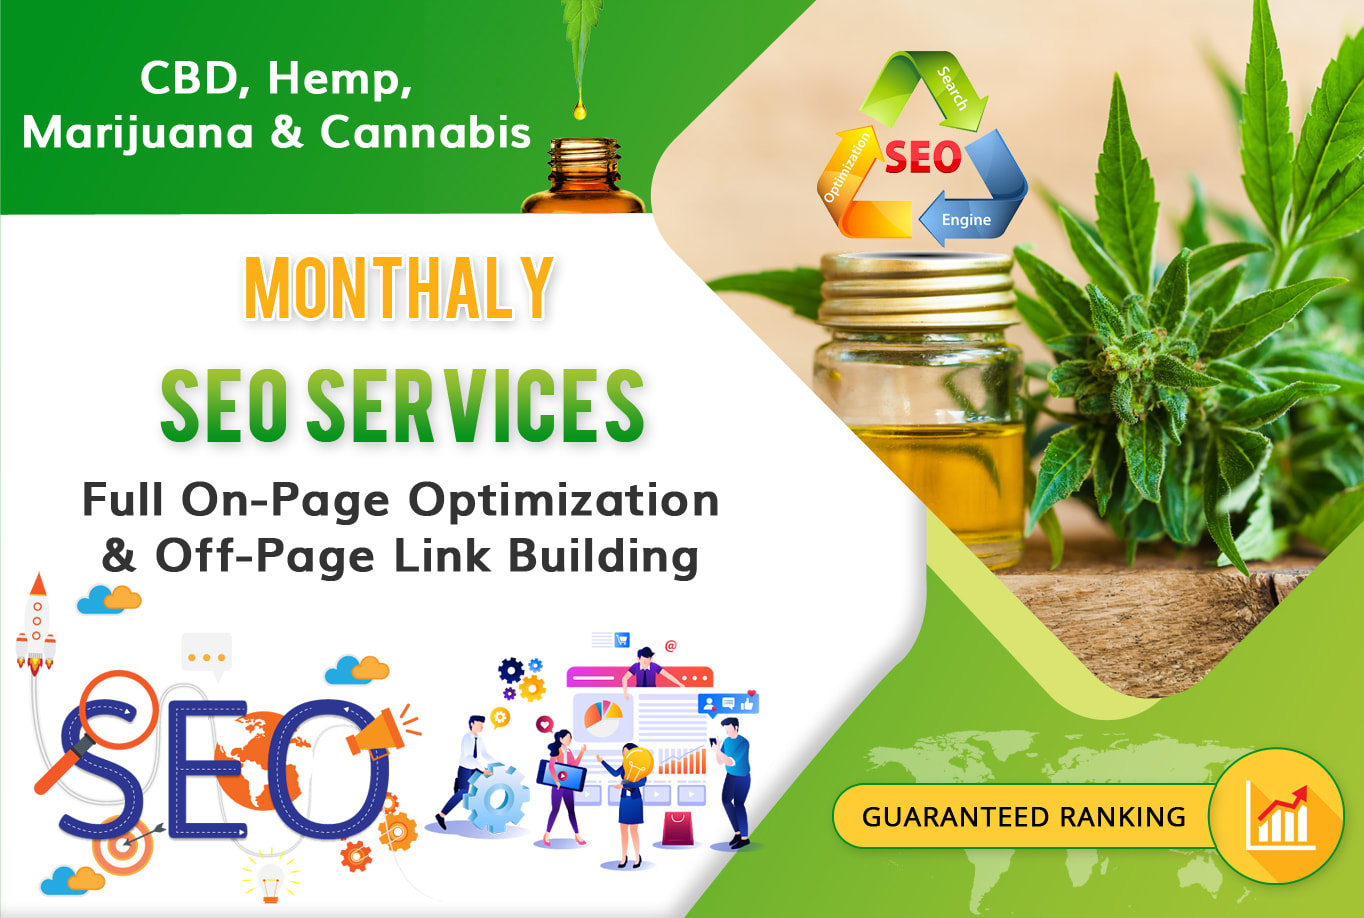 I Will Do White Hat SEO For CBD Hemps Marijuana And Cannabis Site